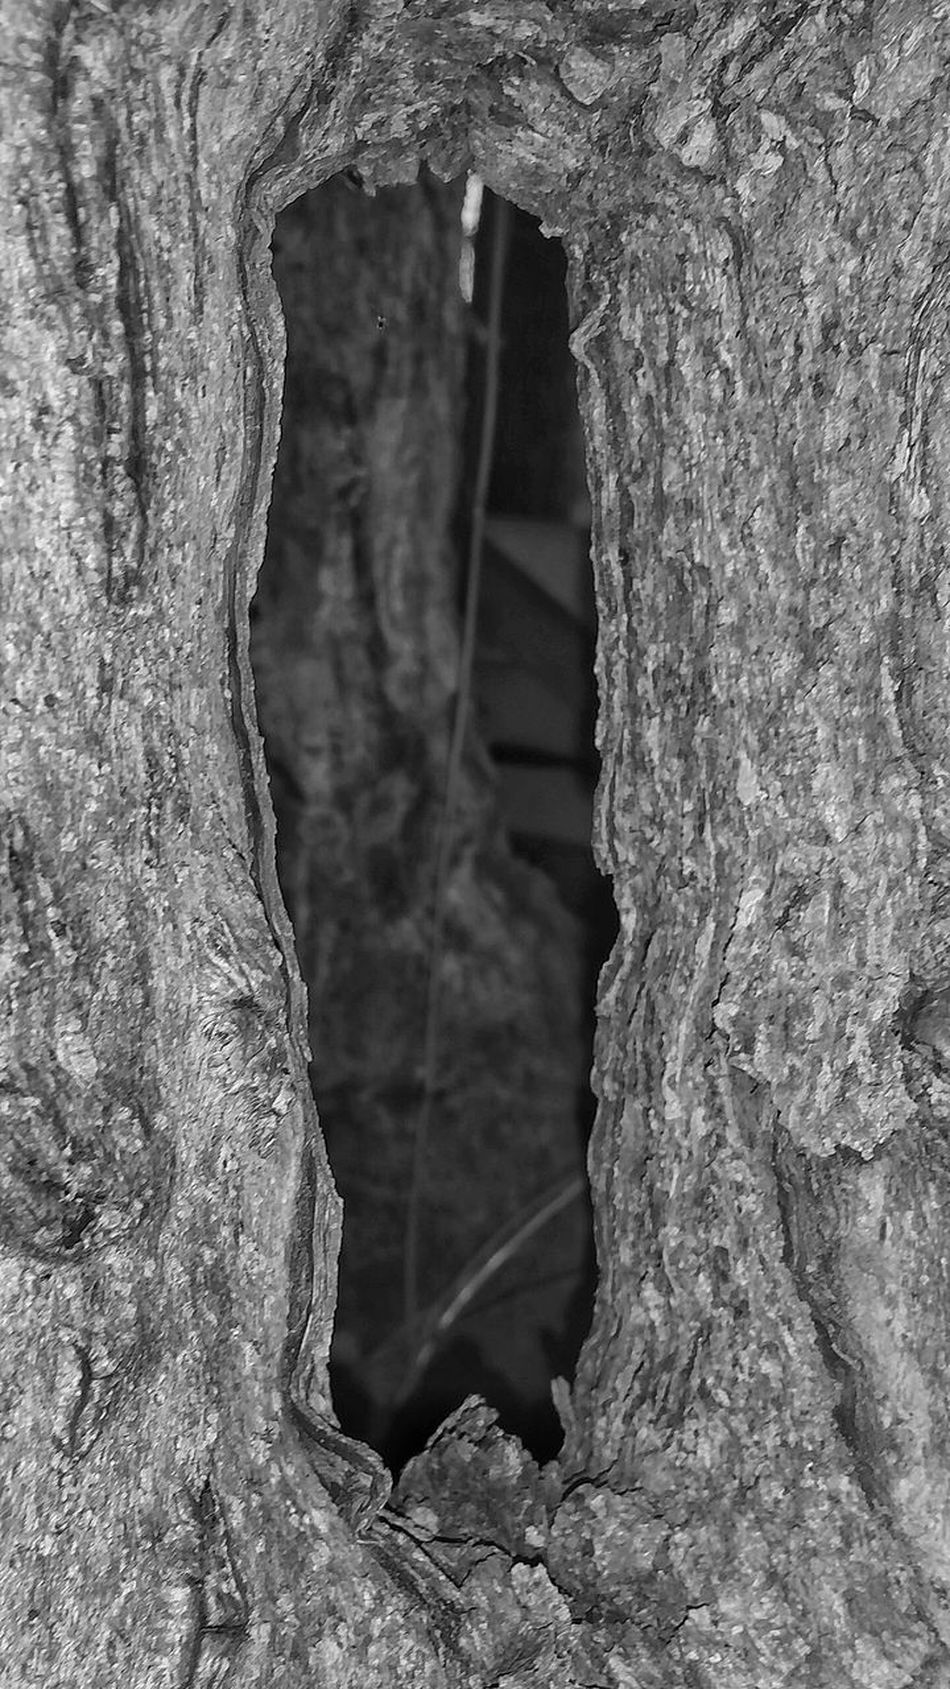 Close-up Textured  Nature No People Day Tree Beauty In Nature Outdoors Black And White Monochrome Frame Hole In Tree Natures Diversities Diversity In Nature Tree Hole Unusal Hole Shapes In Nature  Natural Frame View Through Trees Shapes In Nature  Tree_collection  Shapes And Forms TreePorn Tree Frame